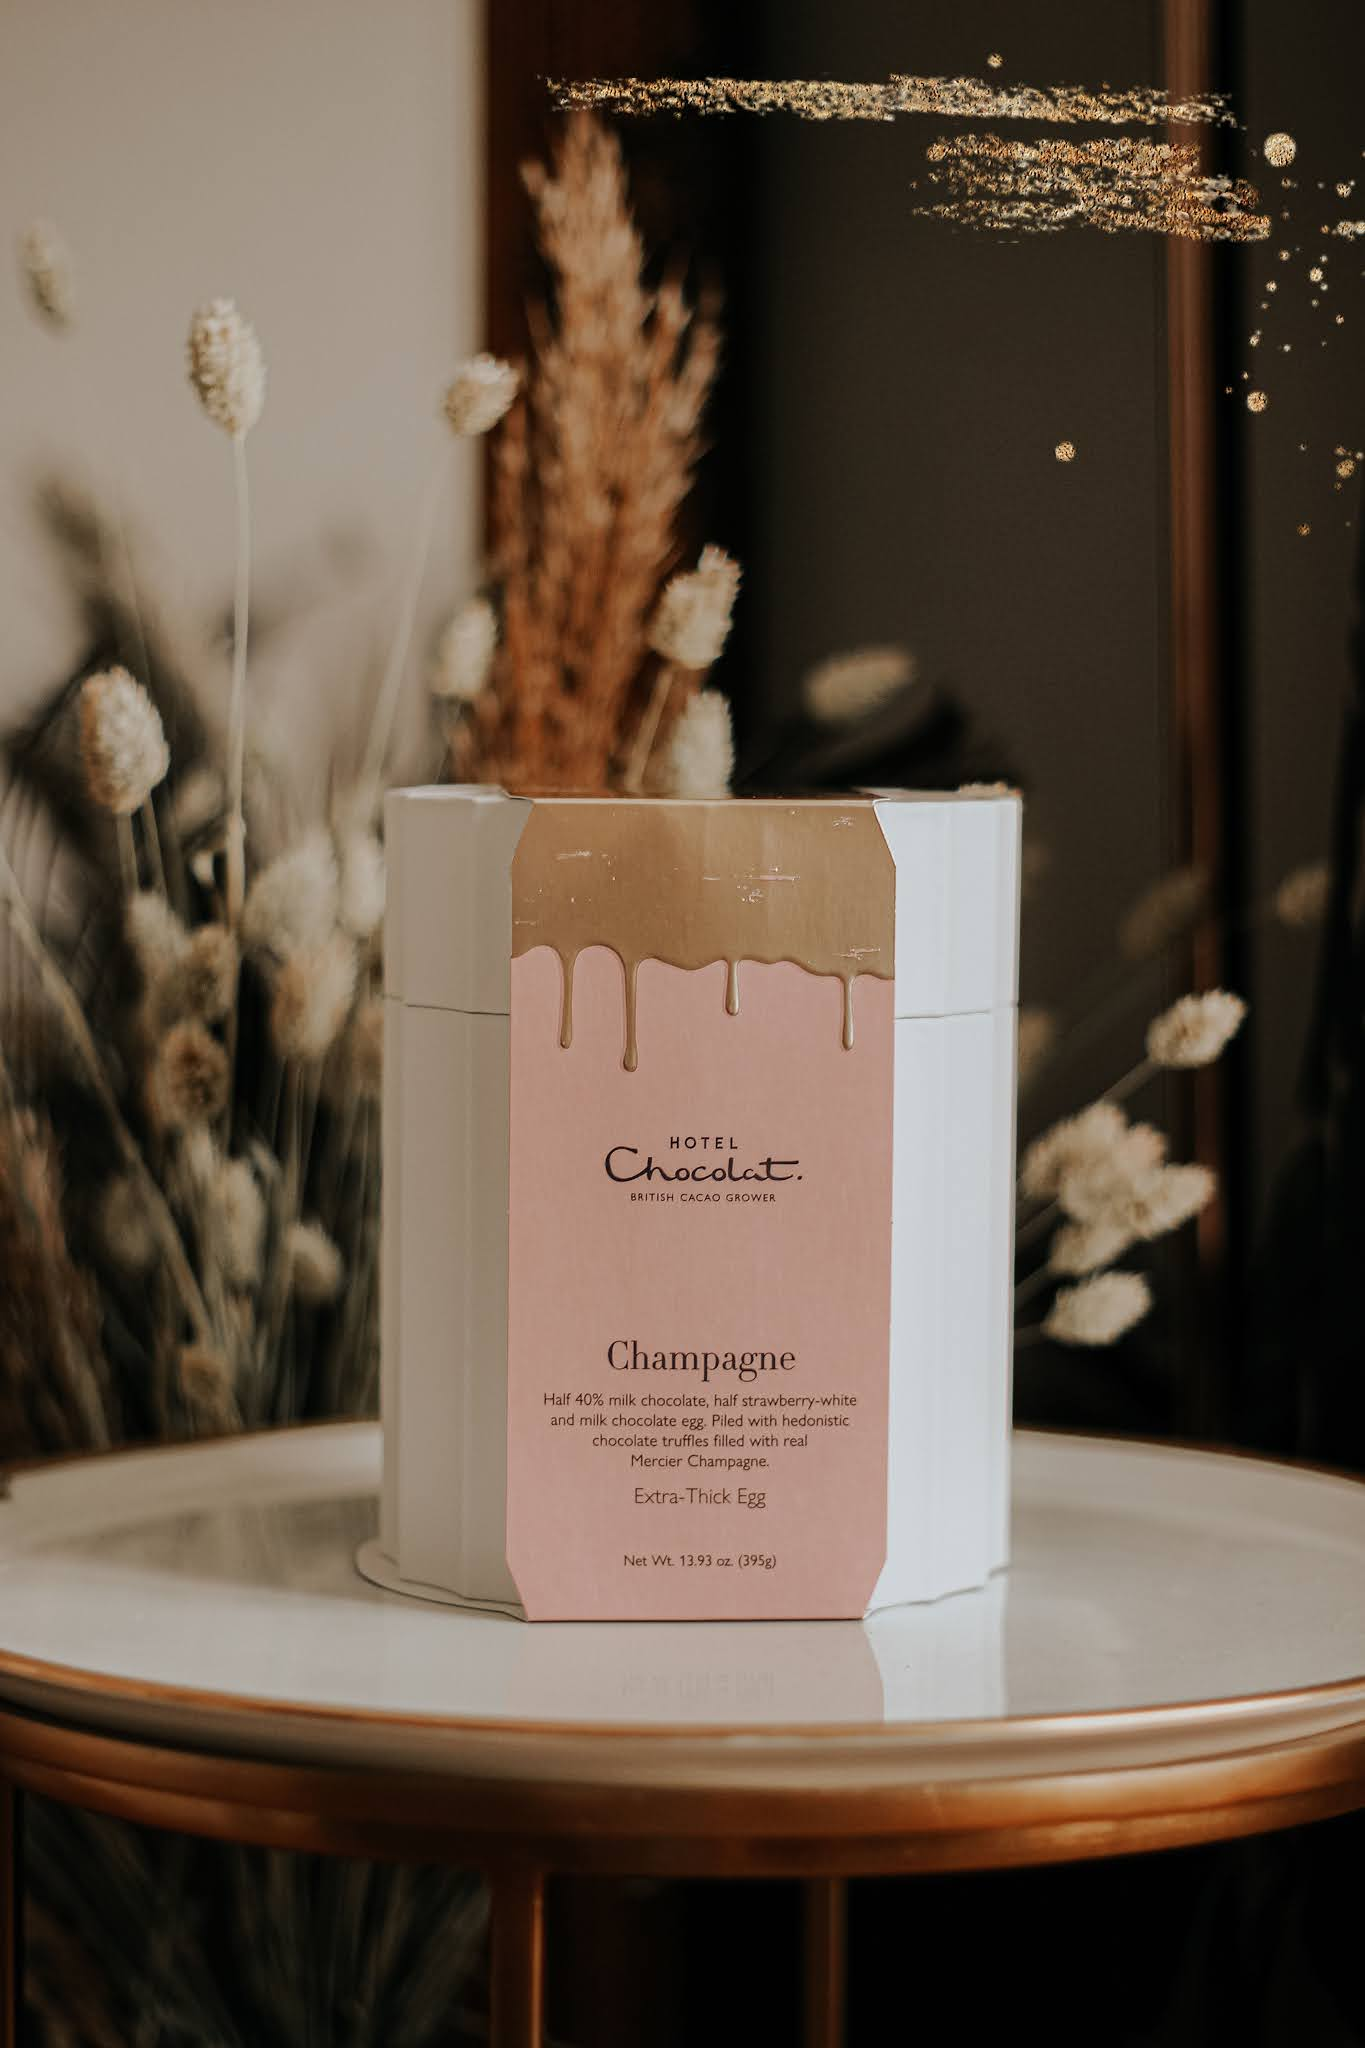 Hotel Chocolat Champagne Easter Egg Worldwide Giveaway